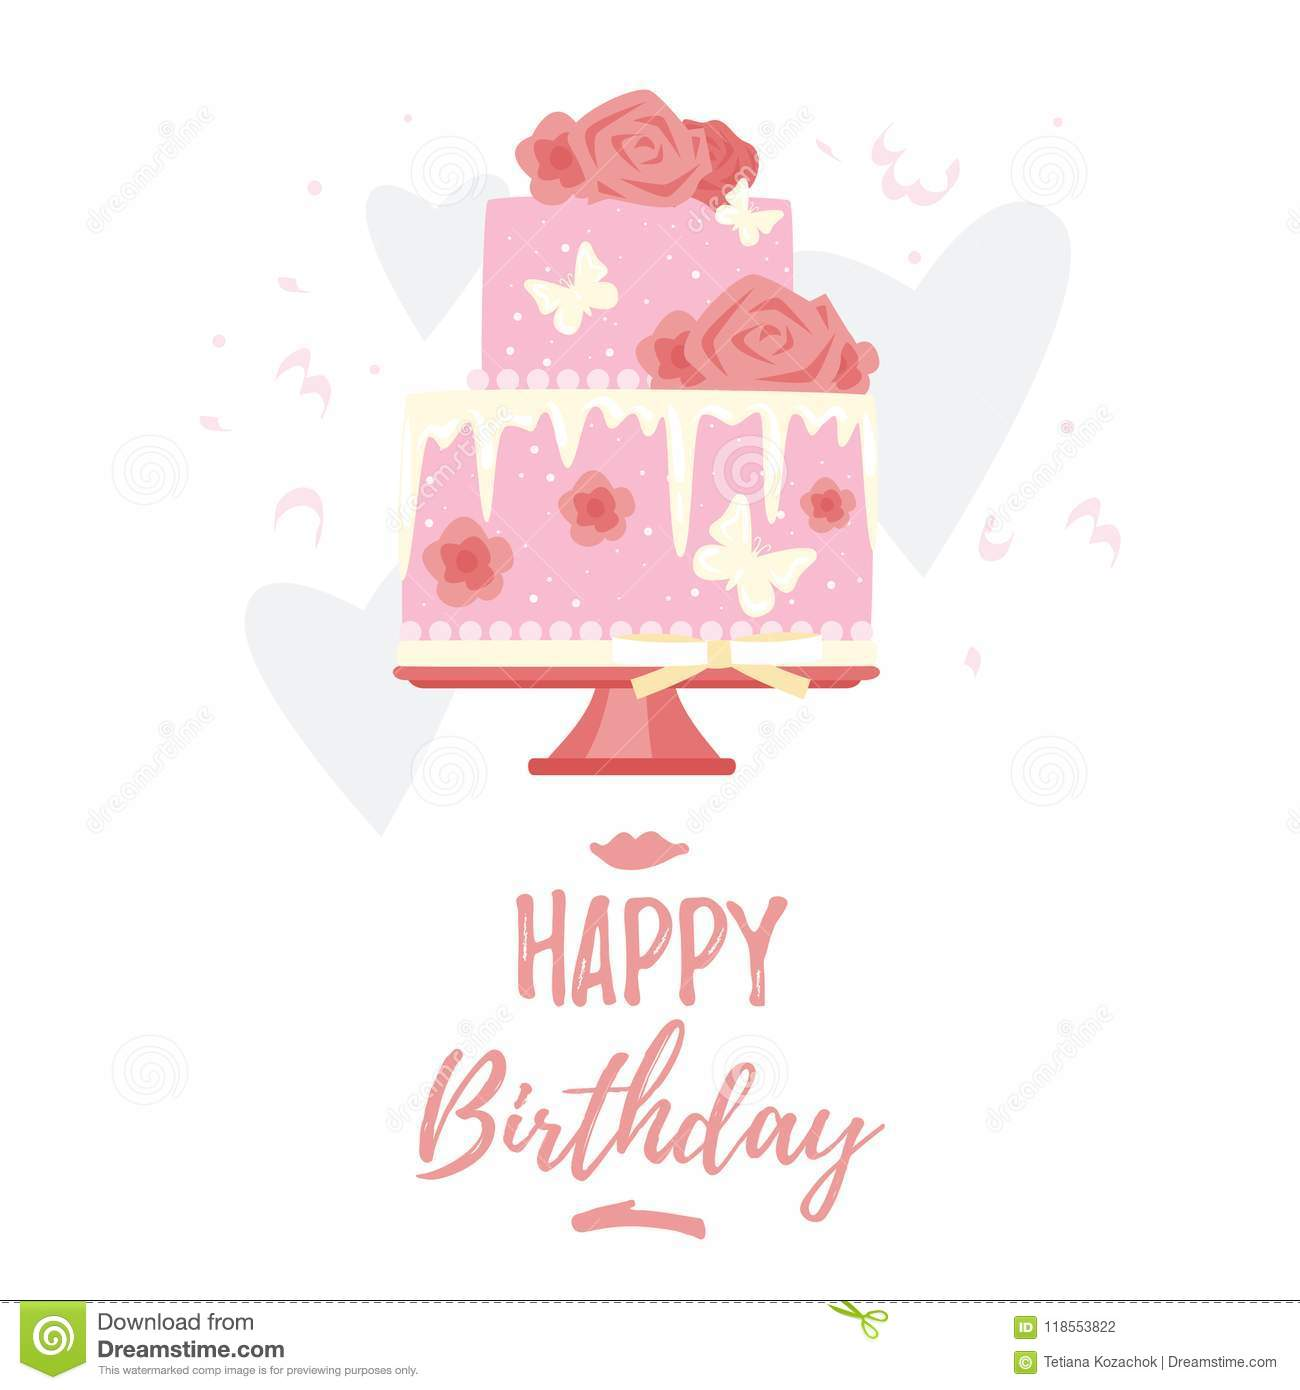 Vector Cartoon Style Illustration Of Birthday Cake For Woman Isolated On White Background Template Postcard Print